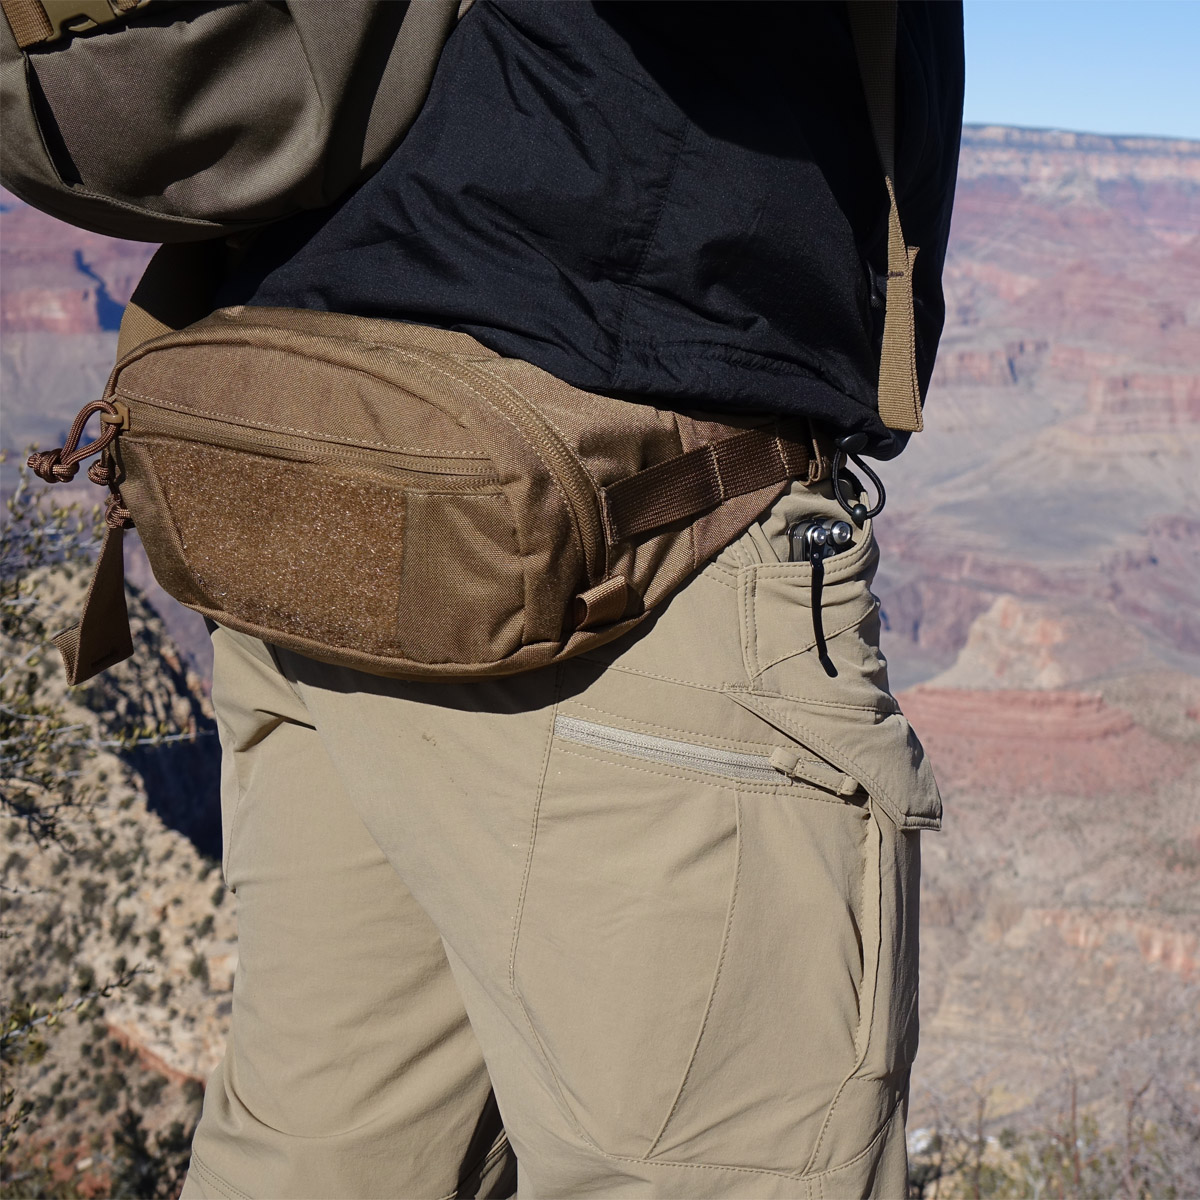 Great little waist pack